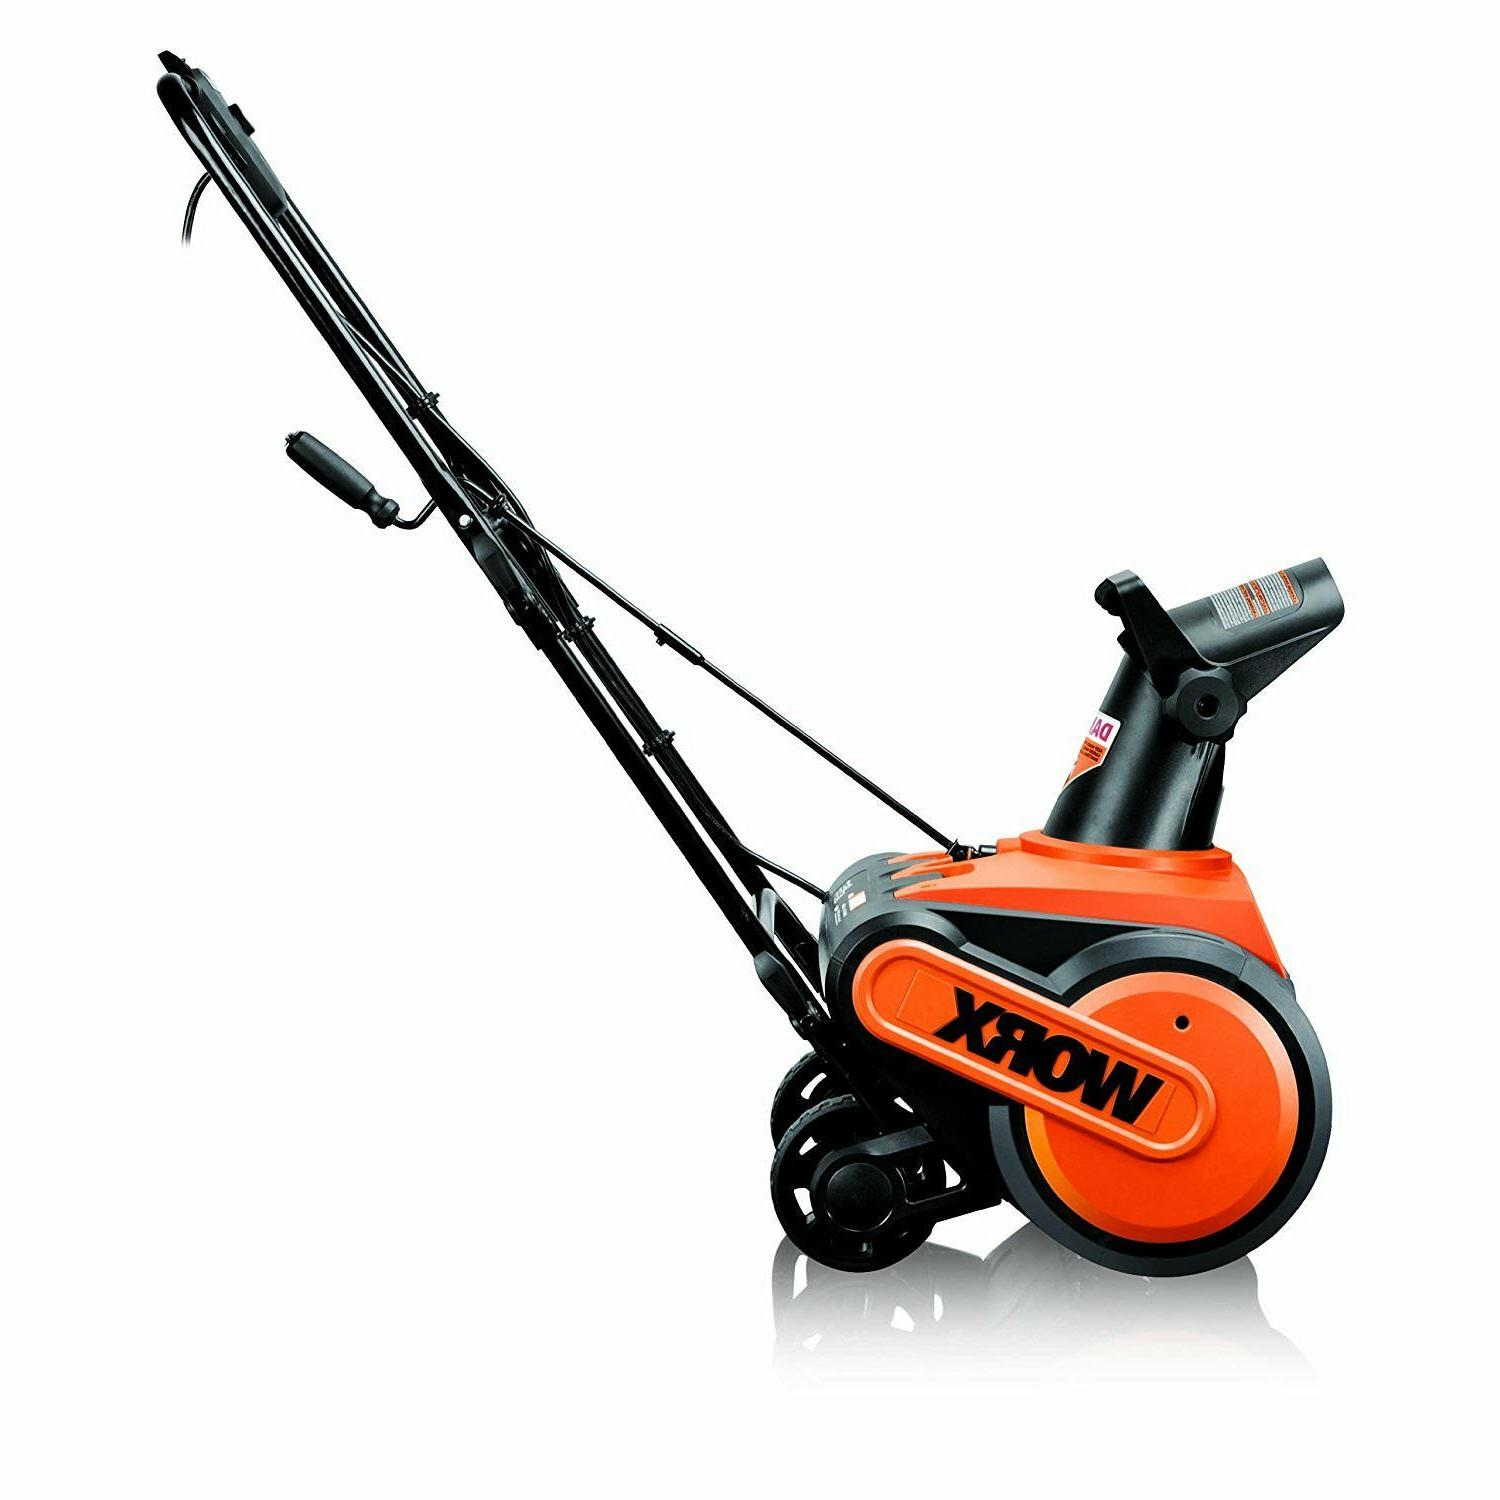 Amp Tool-Less Snow Thrower Move Snow